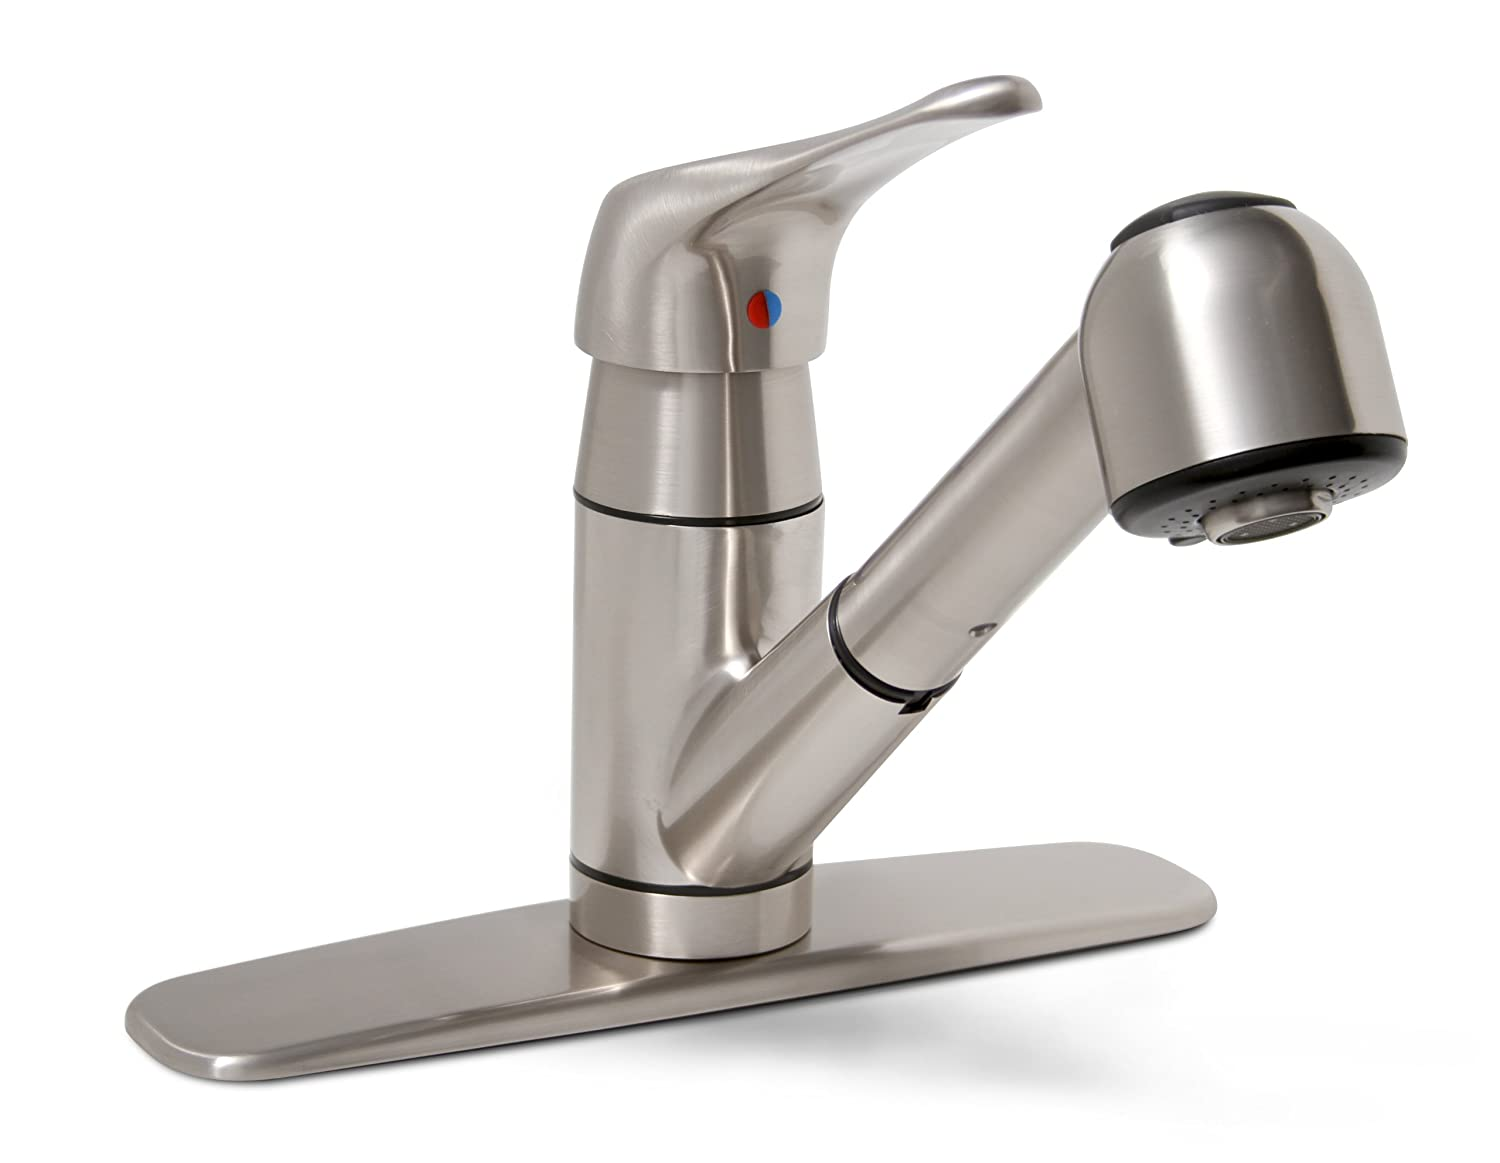 Premier 120161lf sonoma lead free kitchen faucet pluses for Best kitchen sinks and faucets